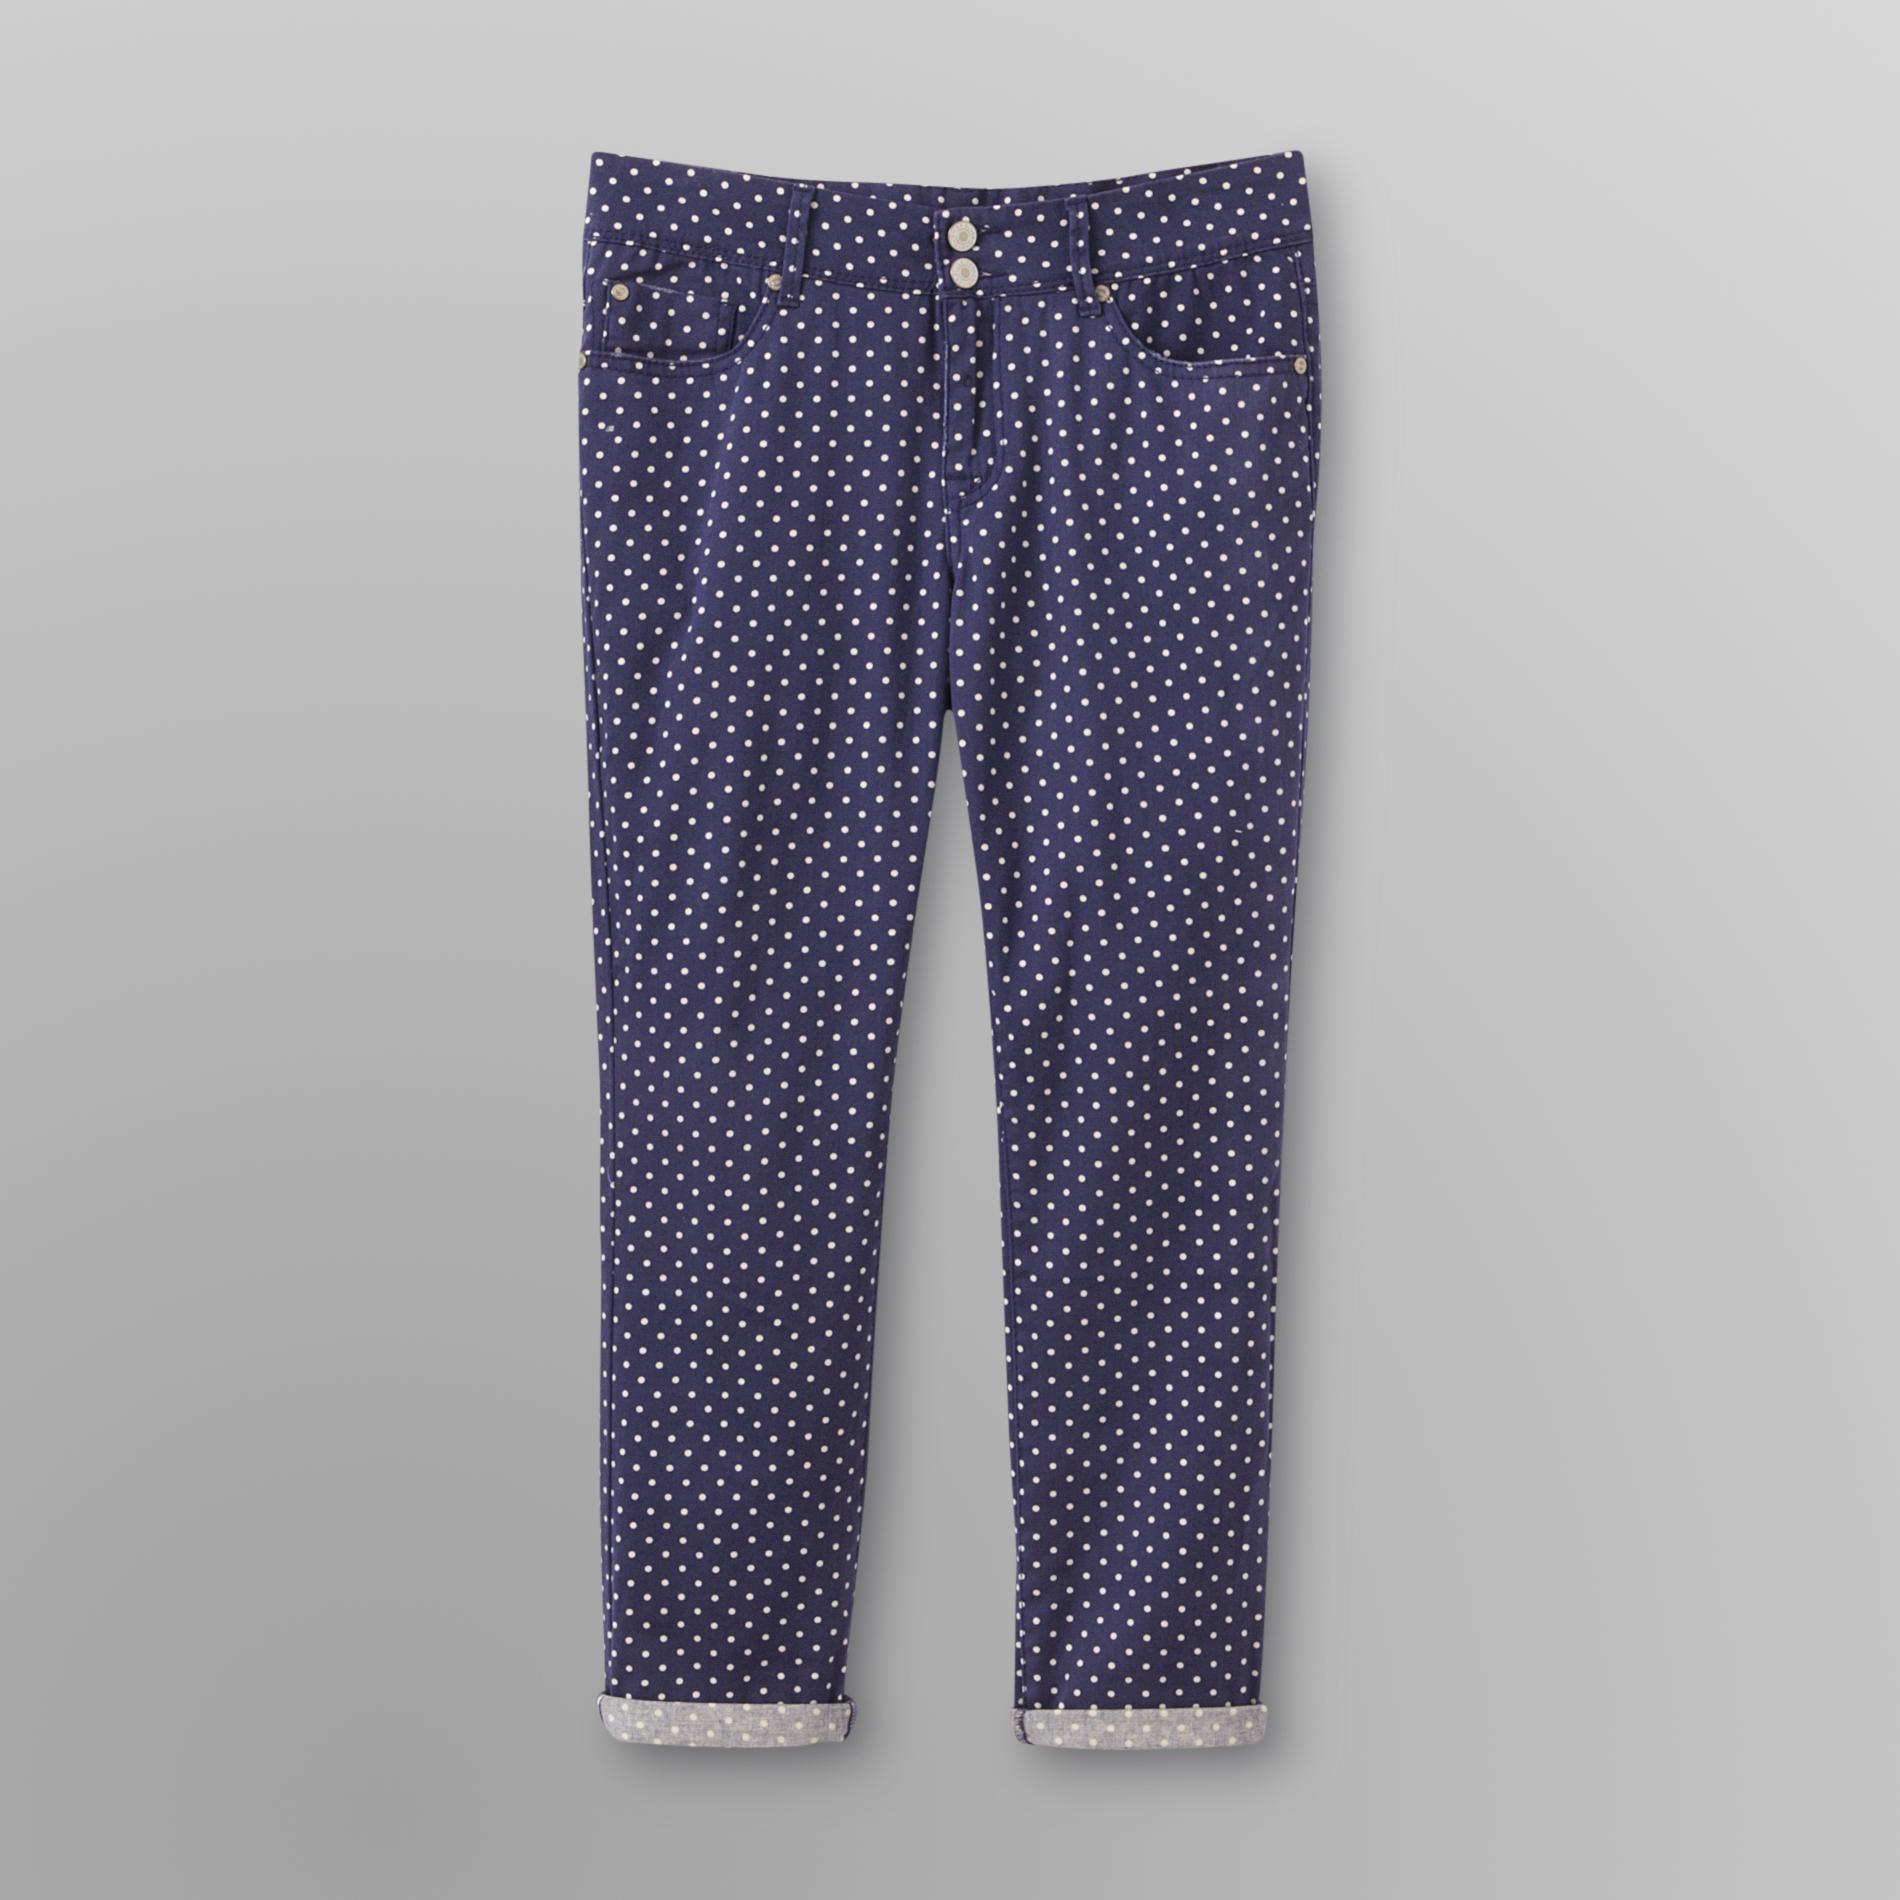 Canyon River Blues Women's Rolled Cuff Capris at Sears.com